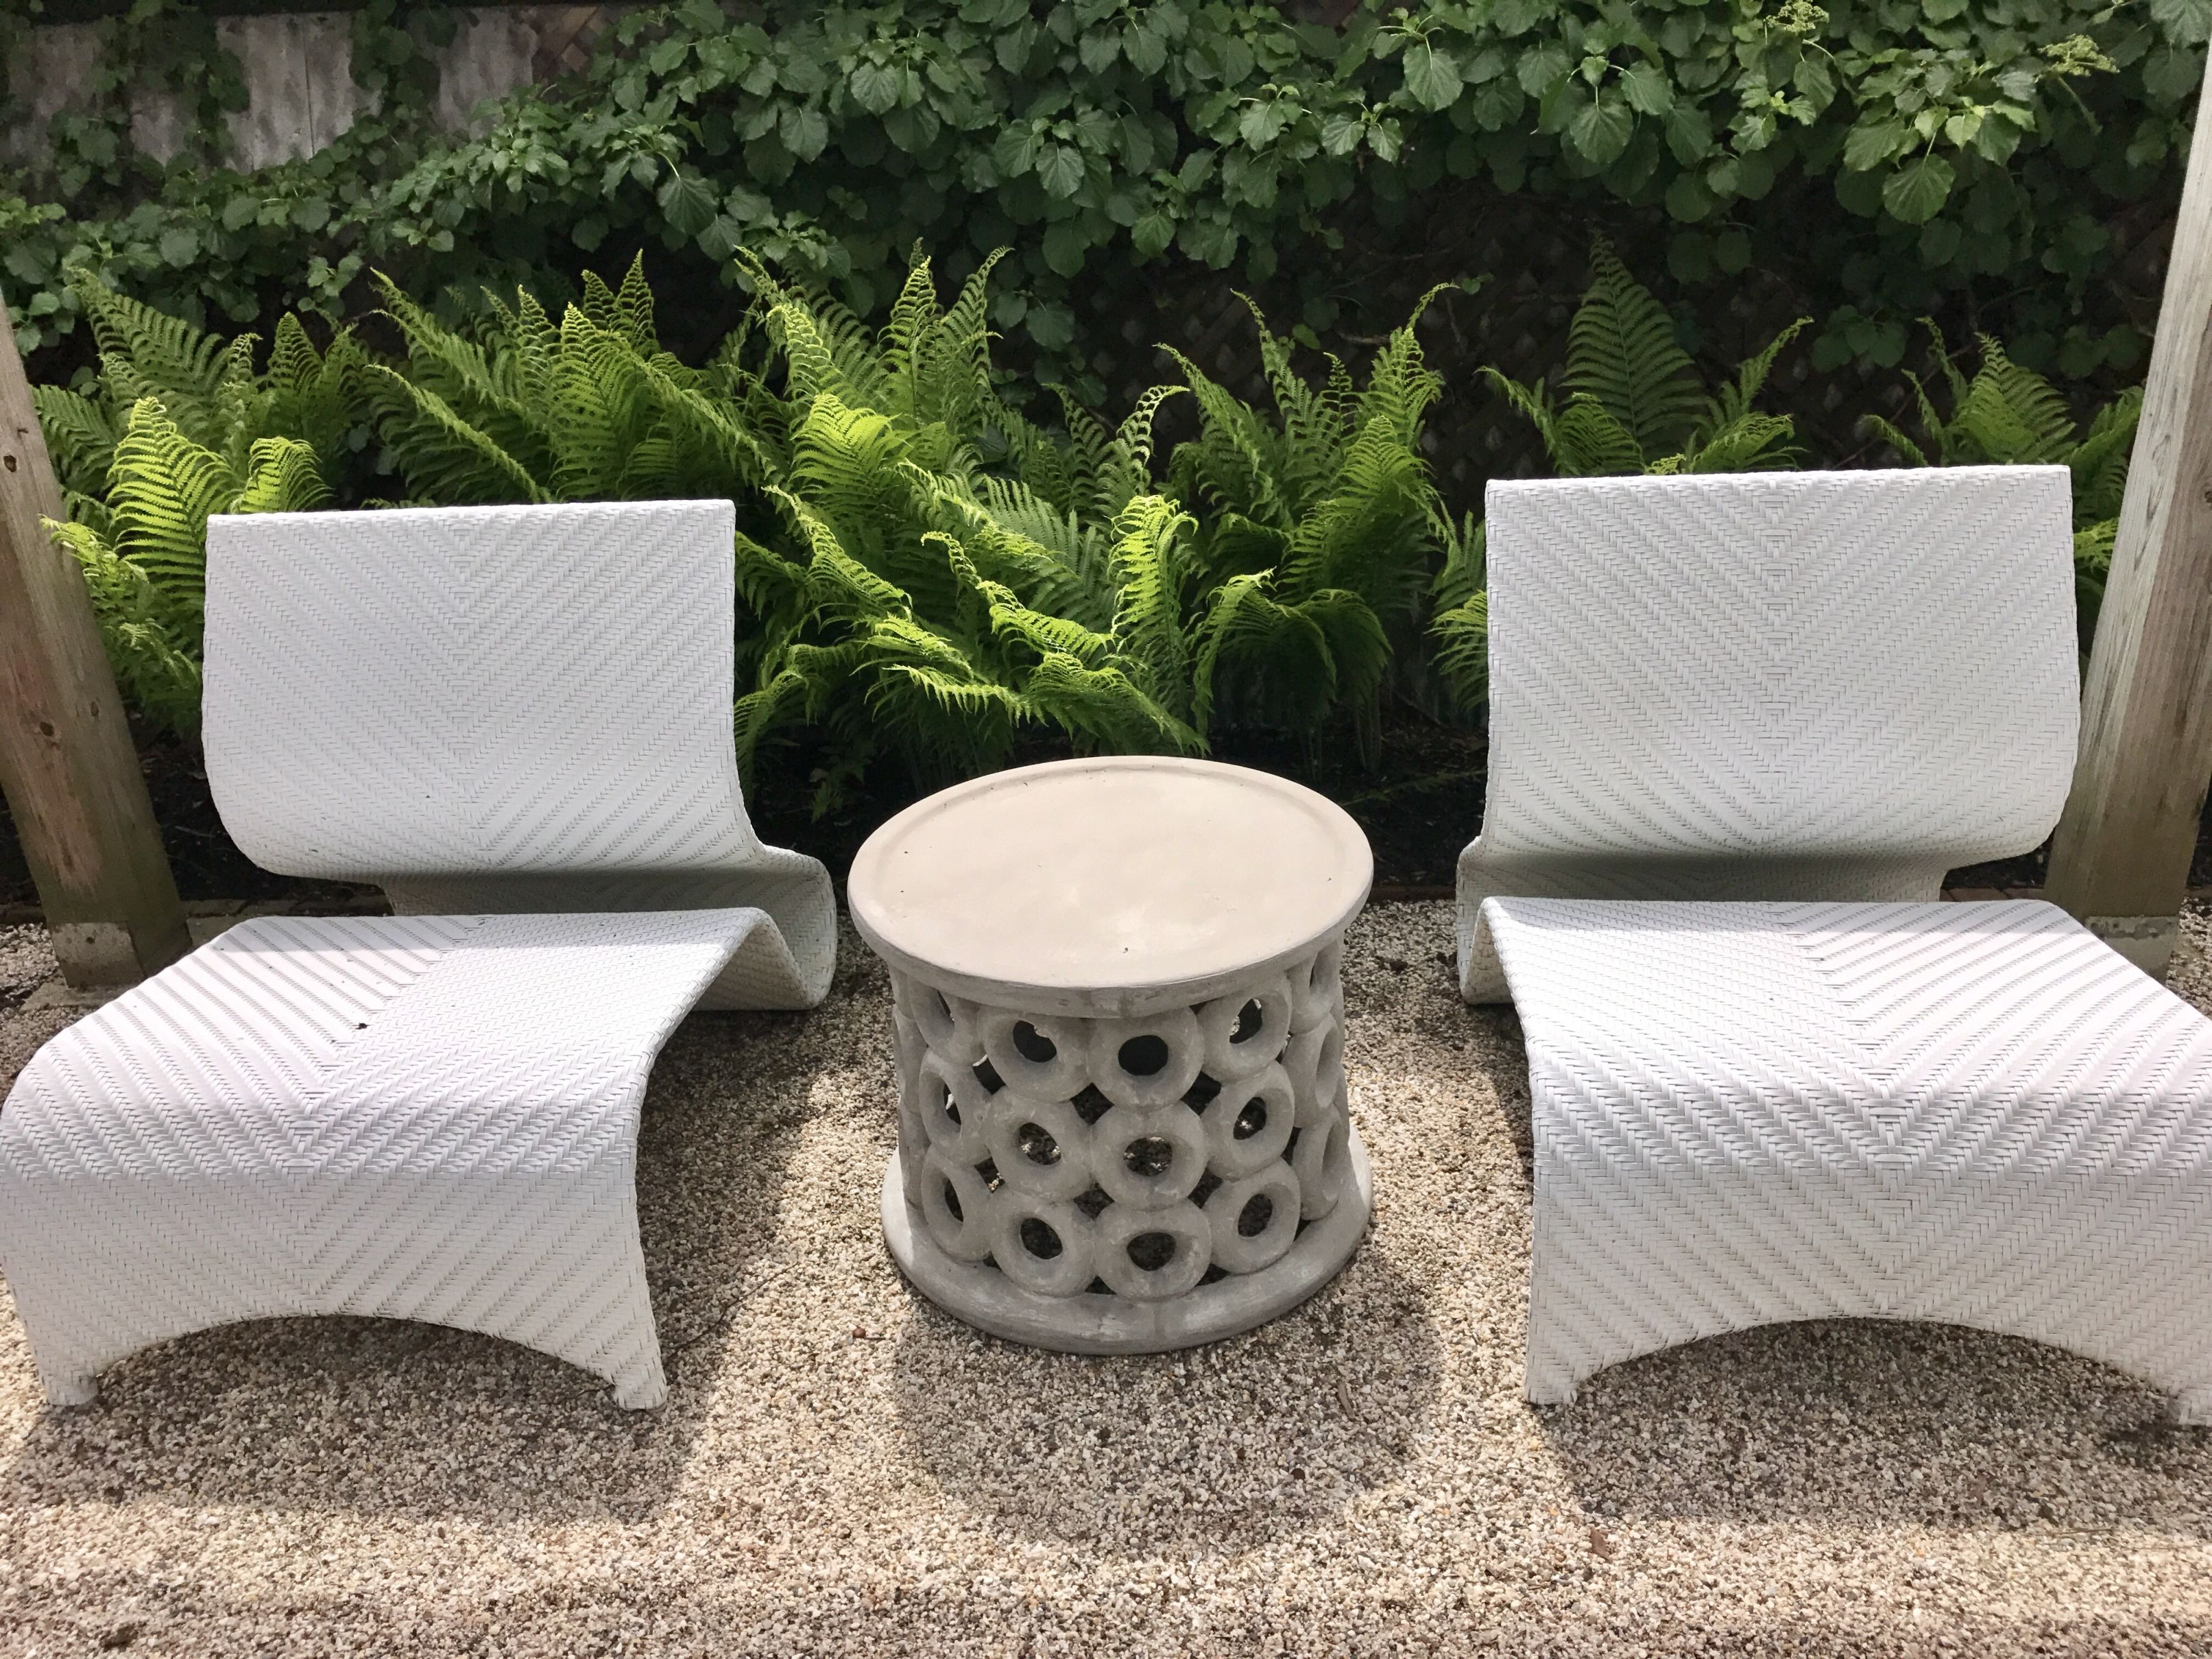 dohnet concrete outdoor side table mecox gardens fnst donut cover previous next wrought iron design accent tables edmonton wicker furniture pedestal dining room wine rack towel